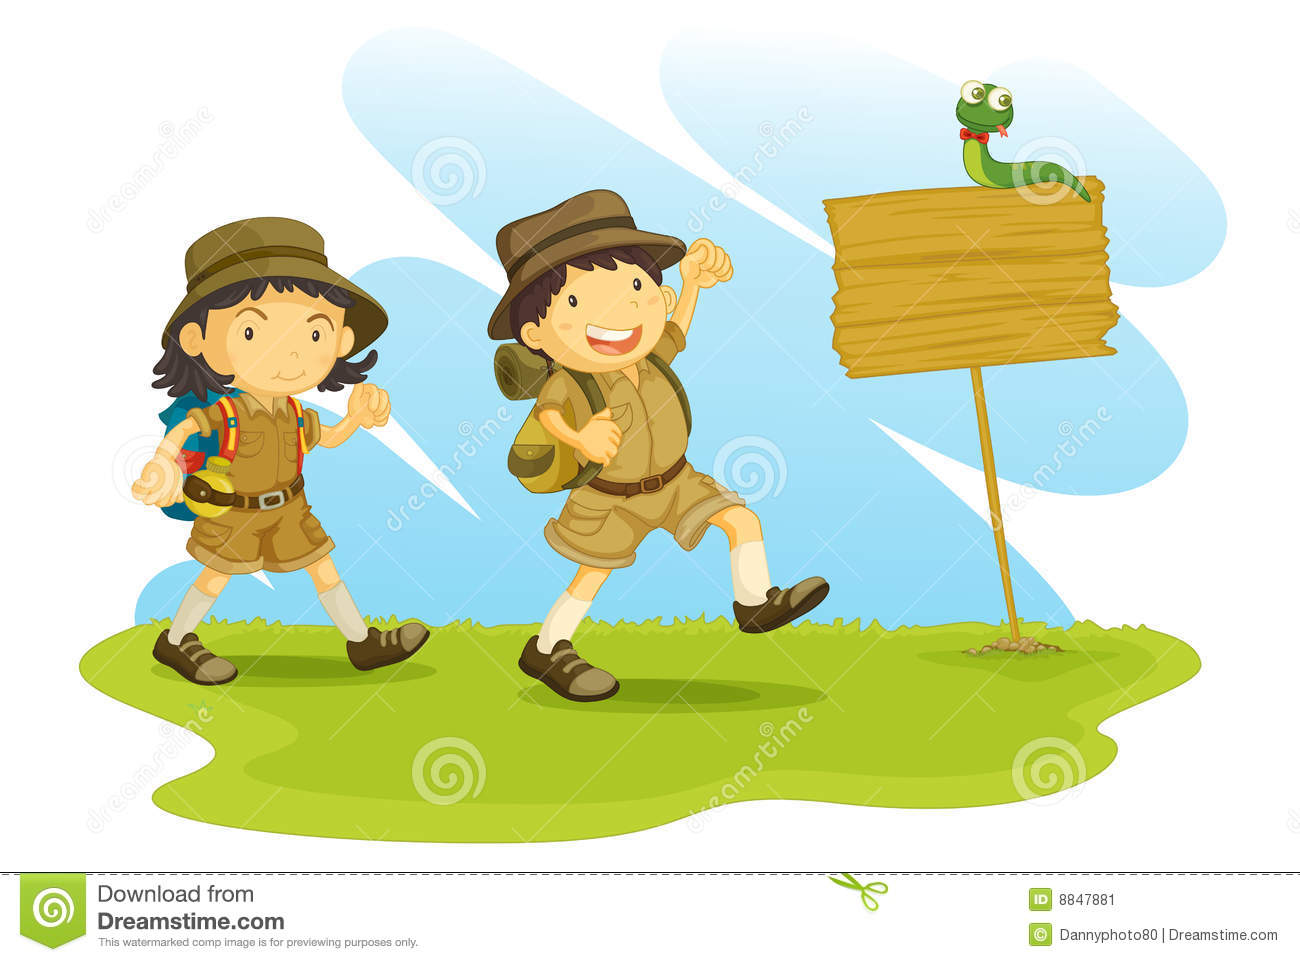 An illustration of a boy and girl scout going for a walk.